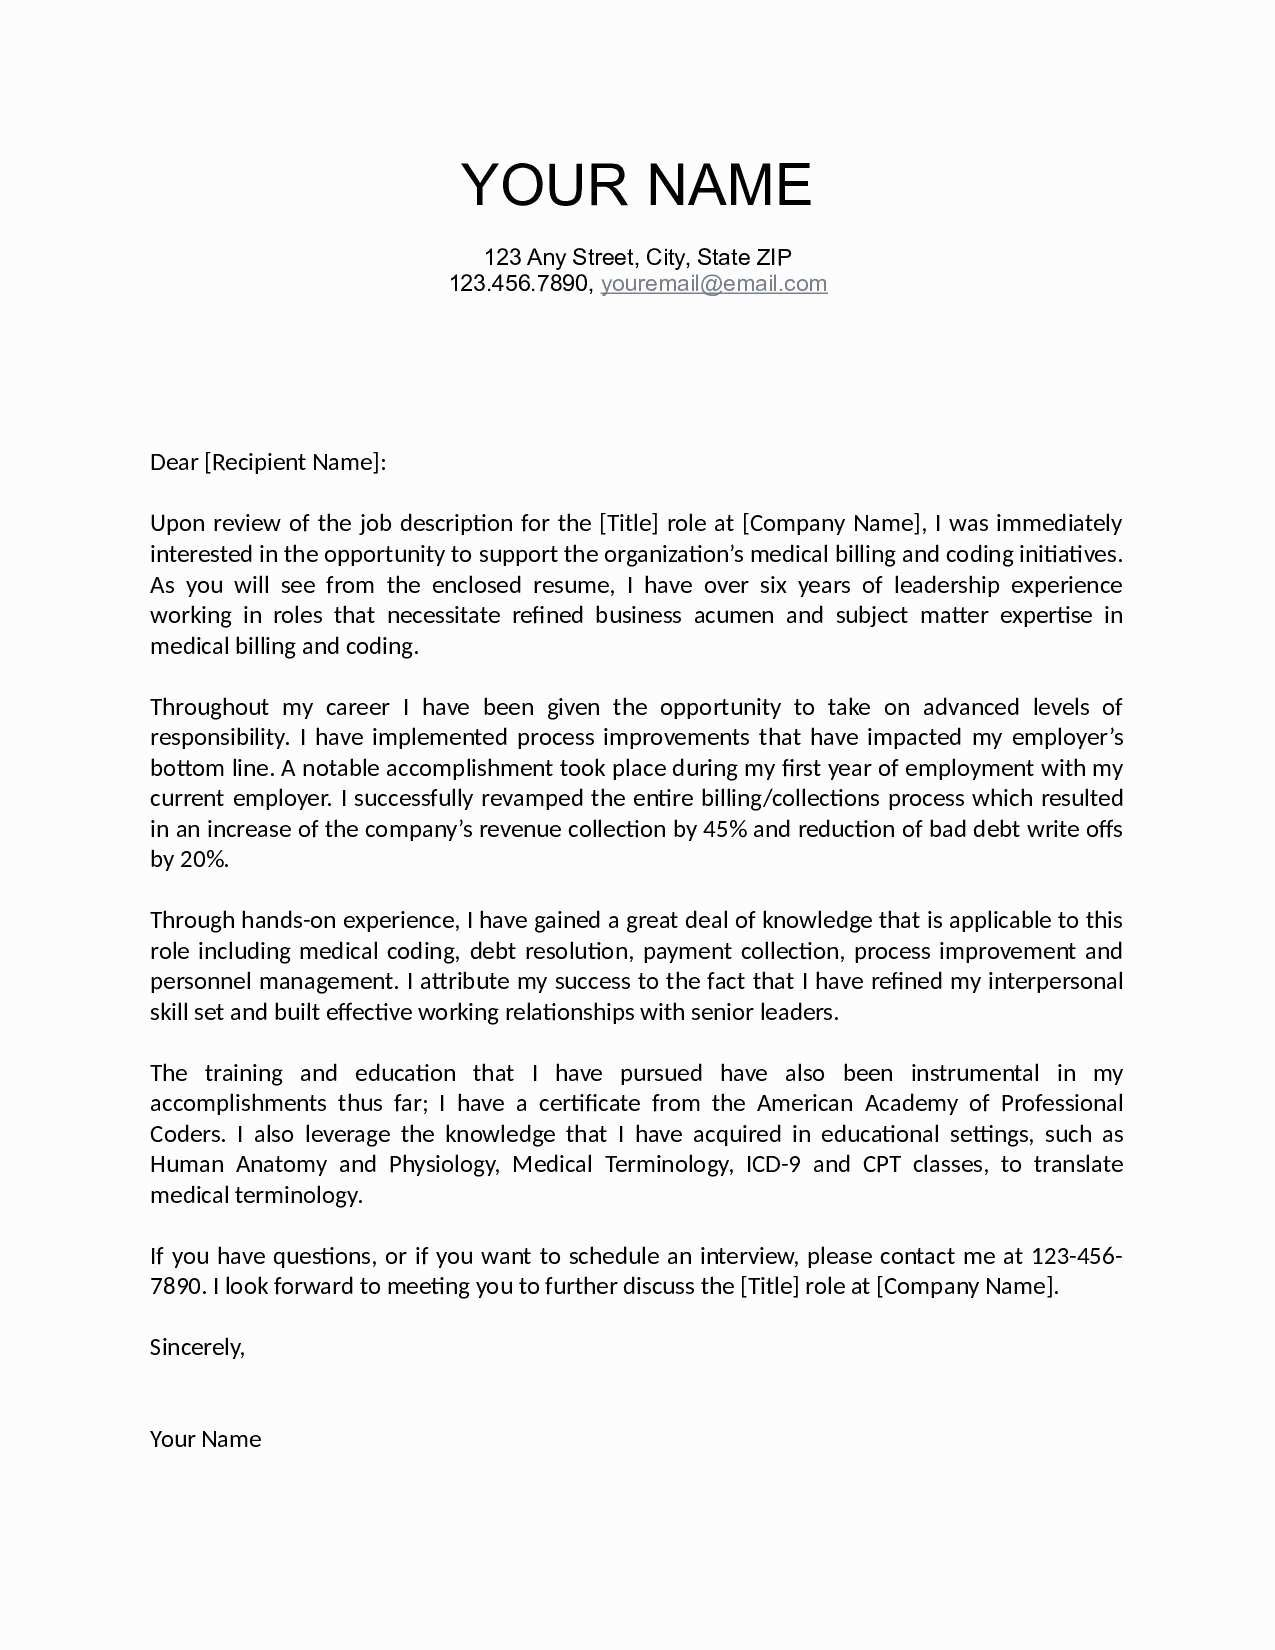 Simple Offer Letter Template - Simple format Job Fer Letter Refrence Job Fer Letter Template